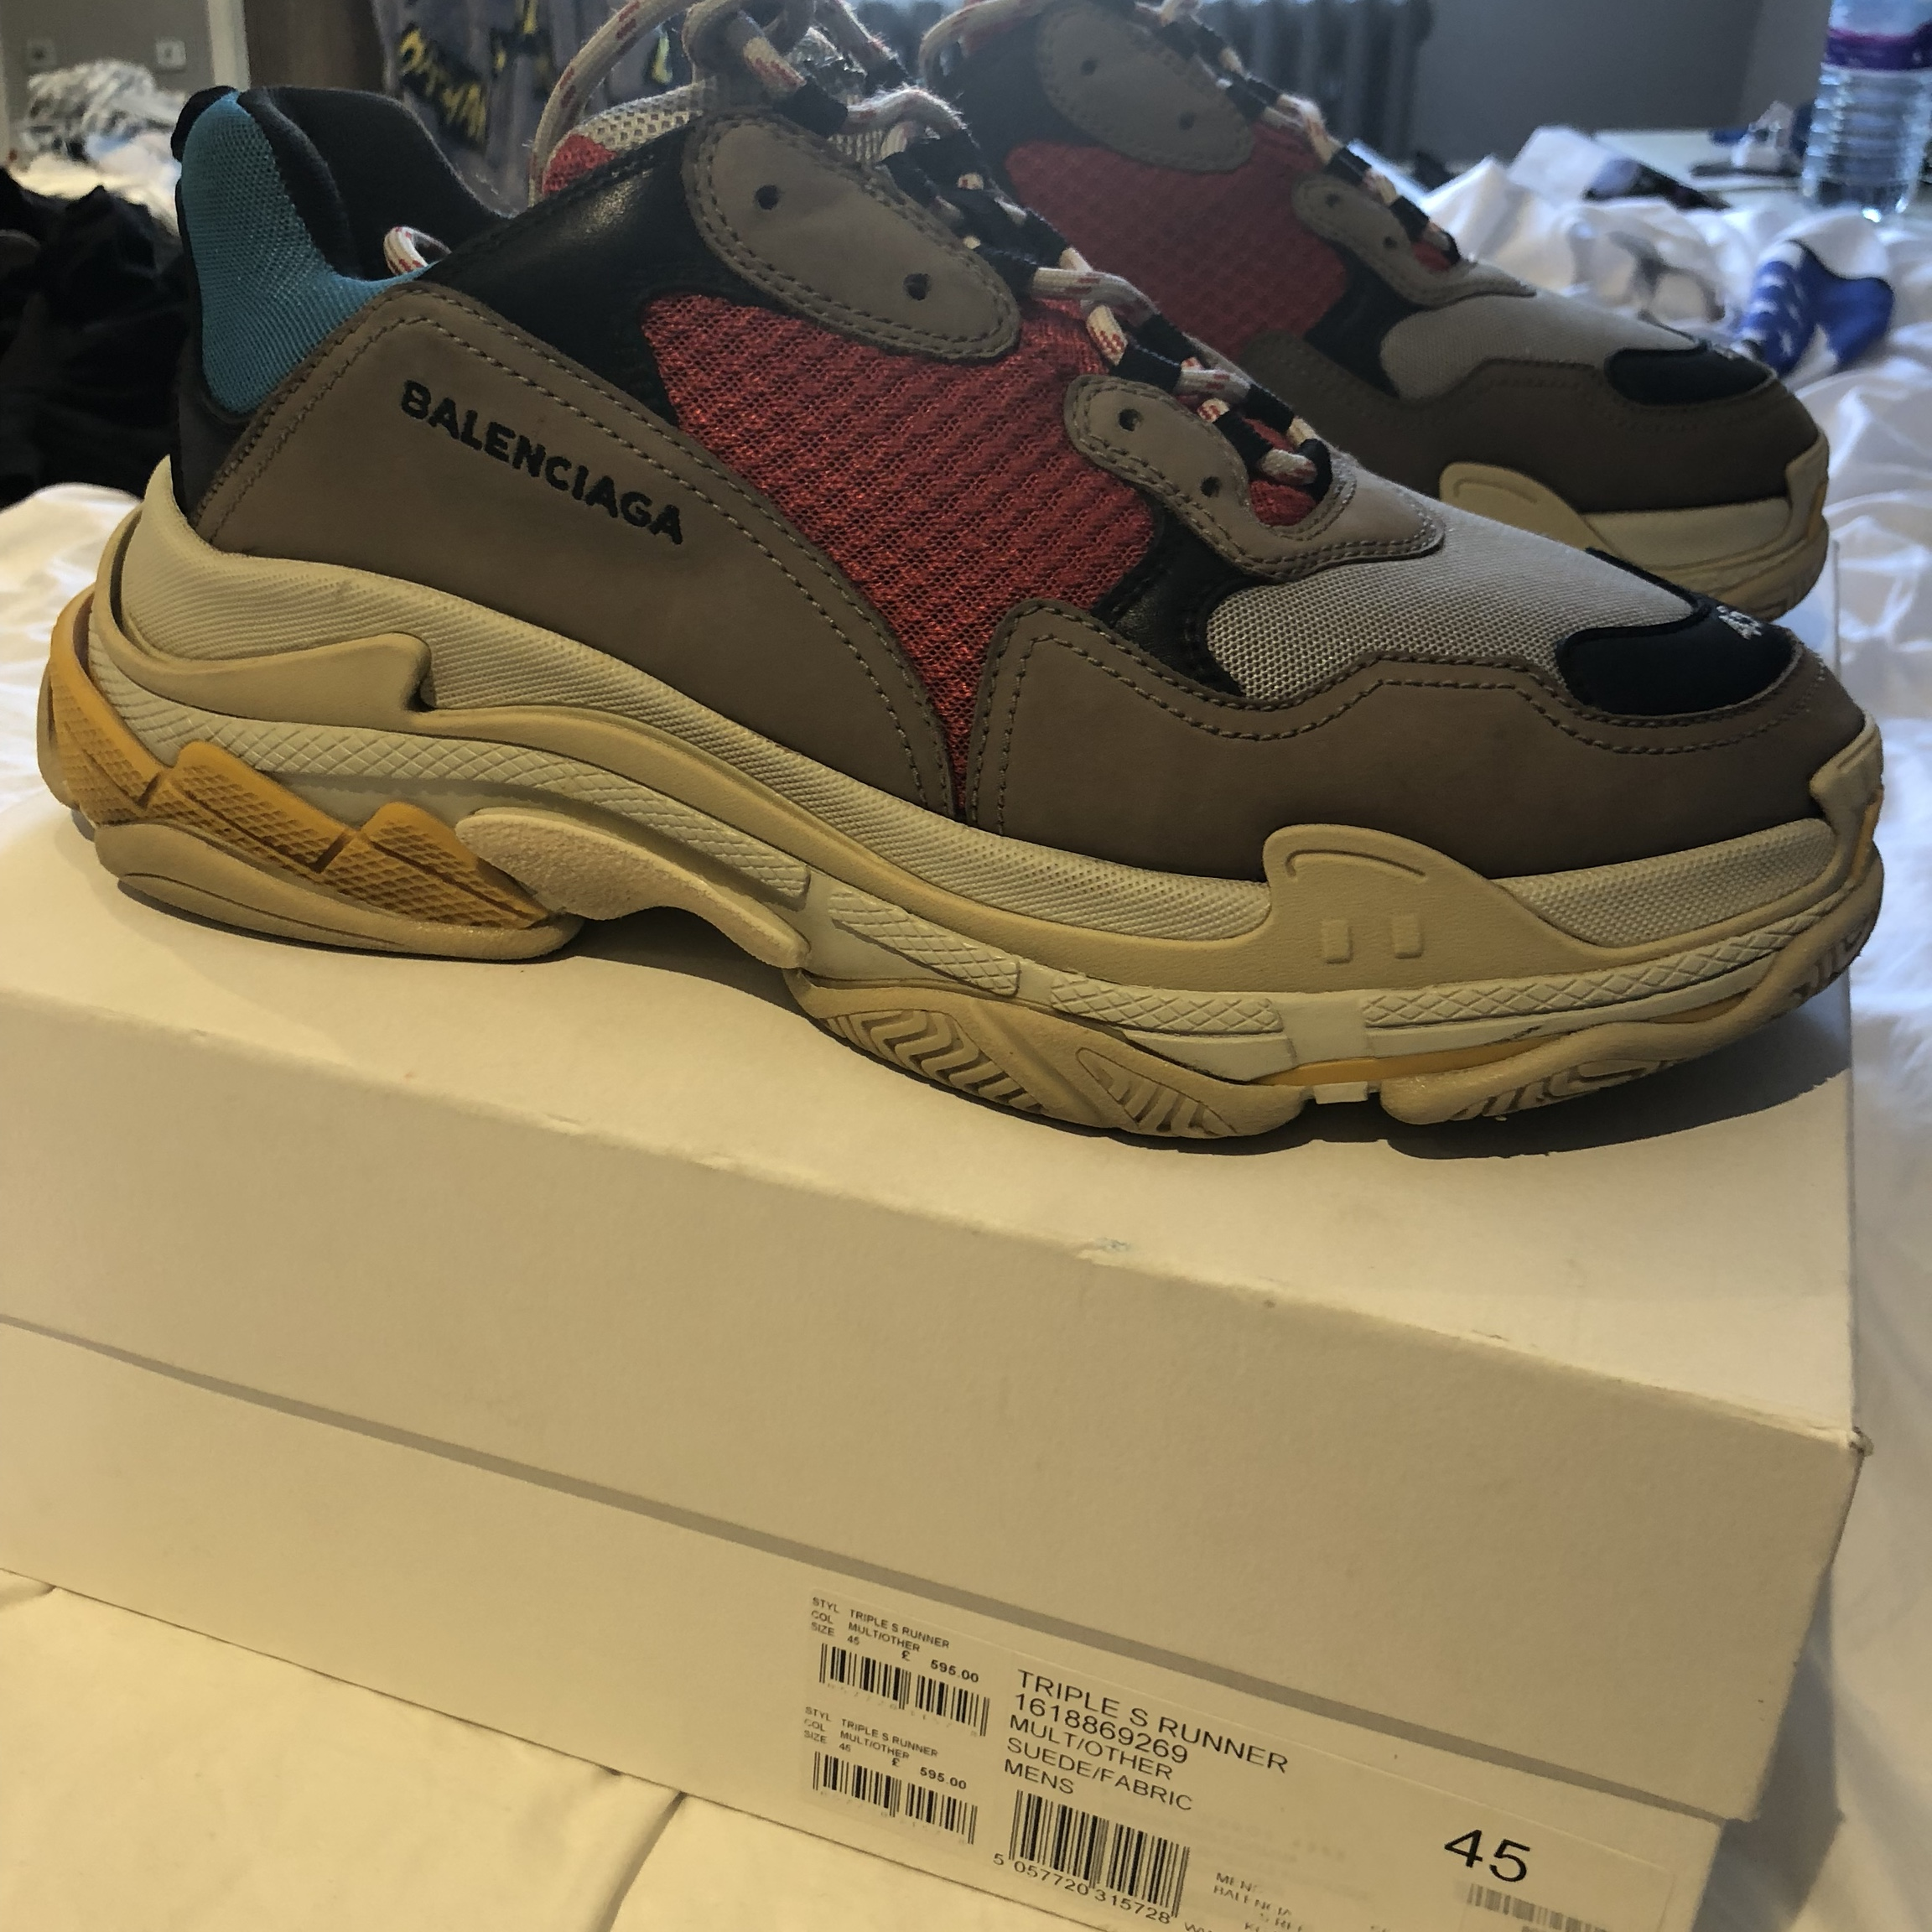 Kickzspot DEAL CỰC TỐT Balenciaga Track Trainer Orange